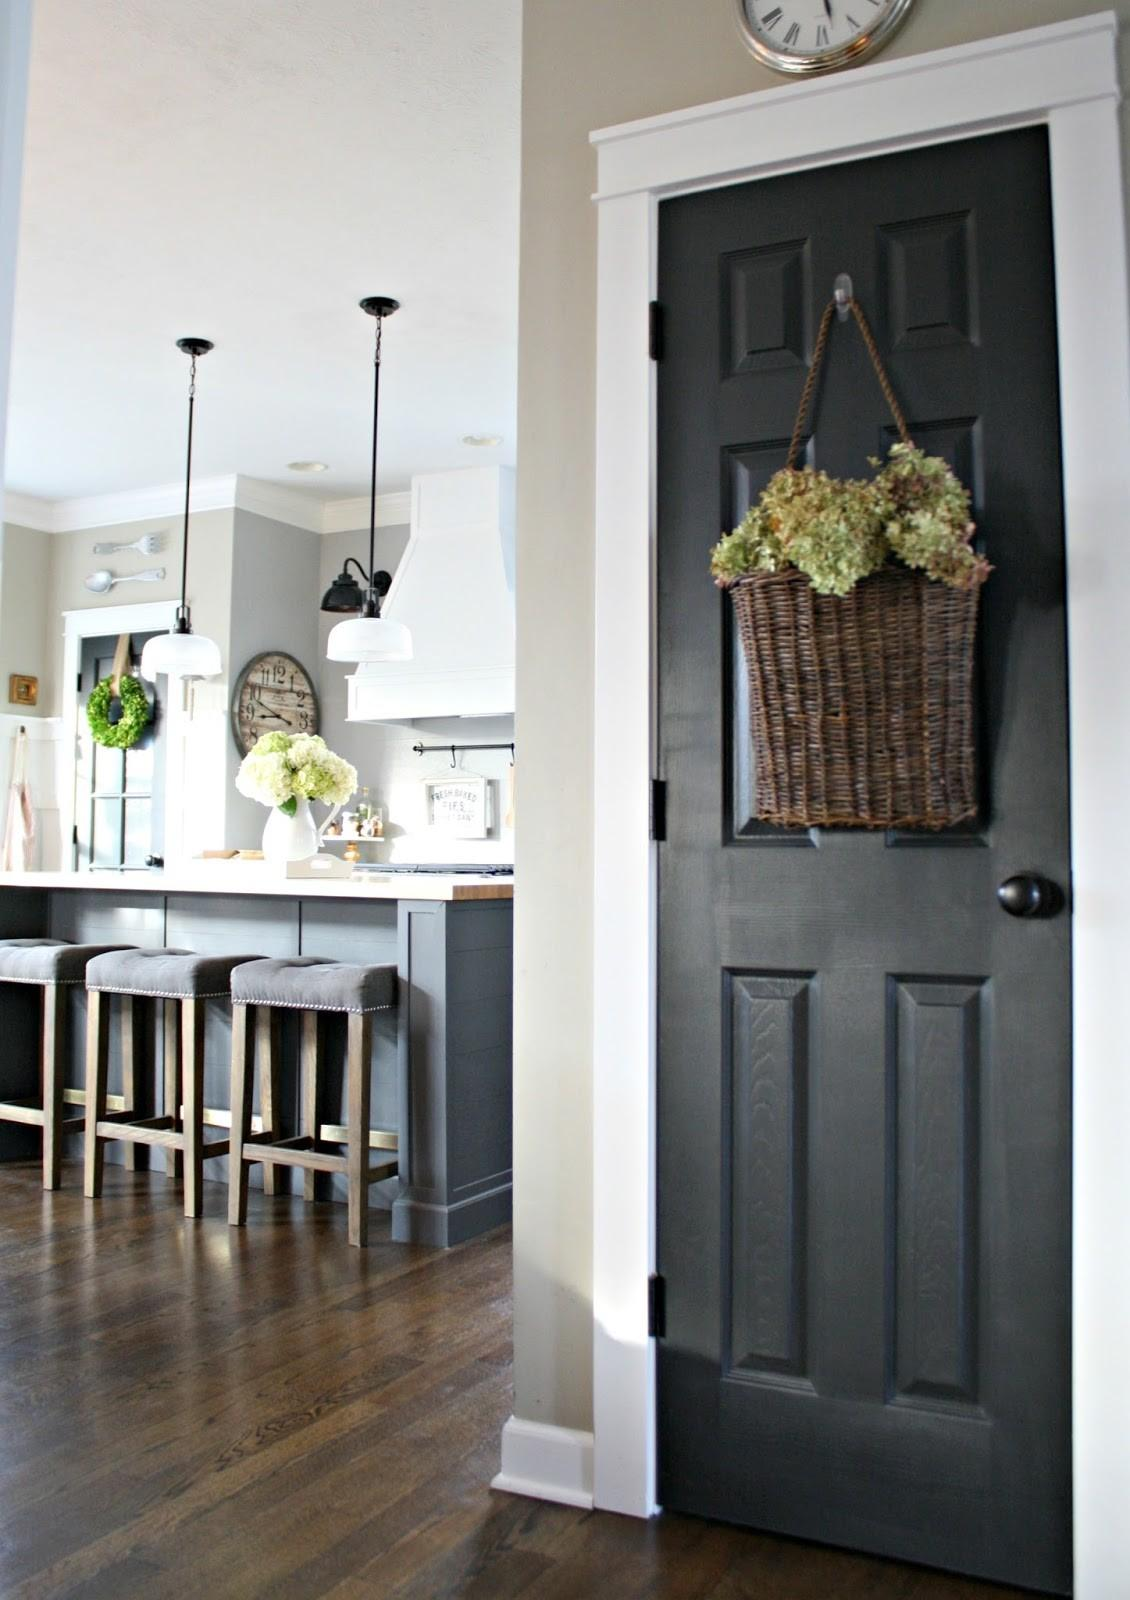 Surprising Color Every Room Needs Thrifty